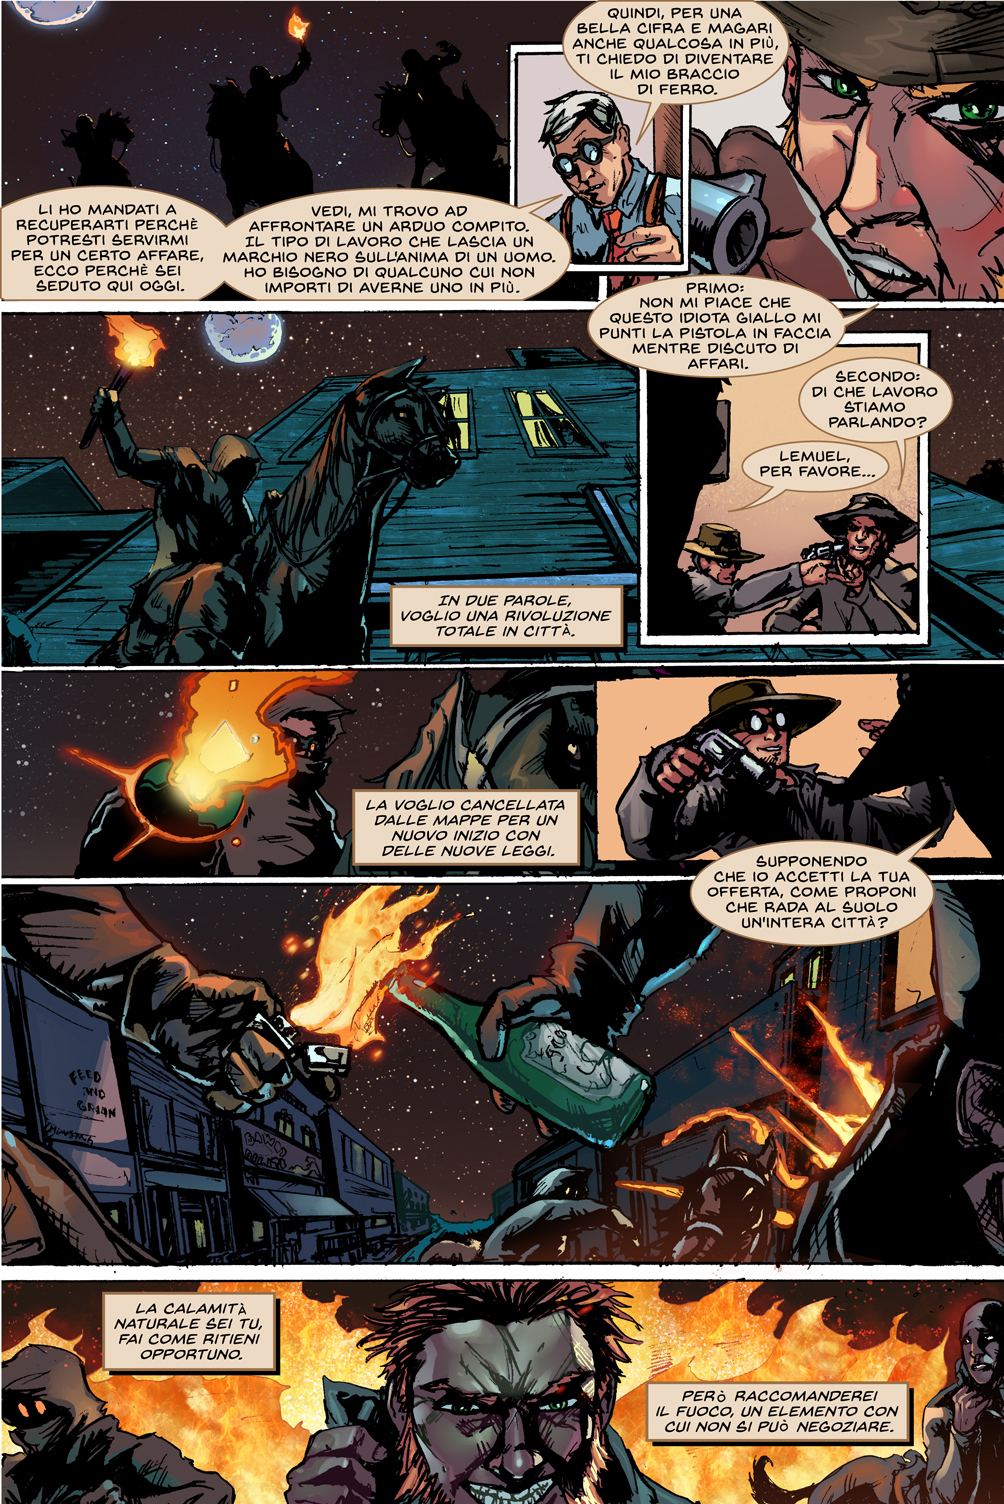 Sartana #1 - Page 11 - Italian Translation